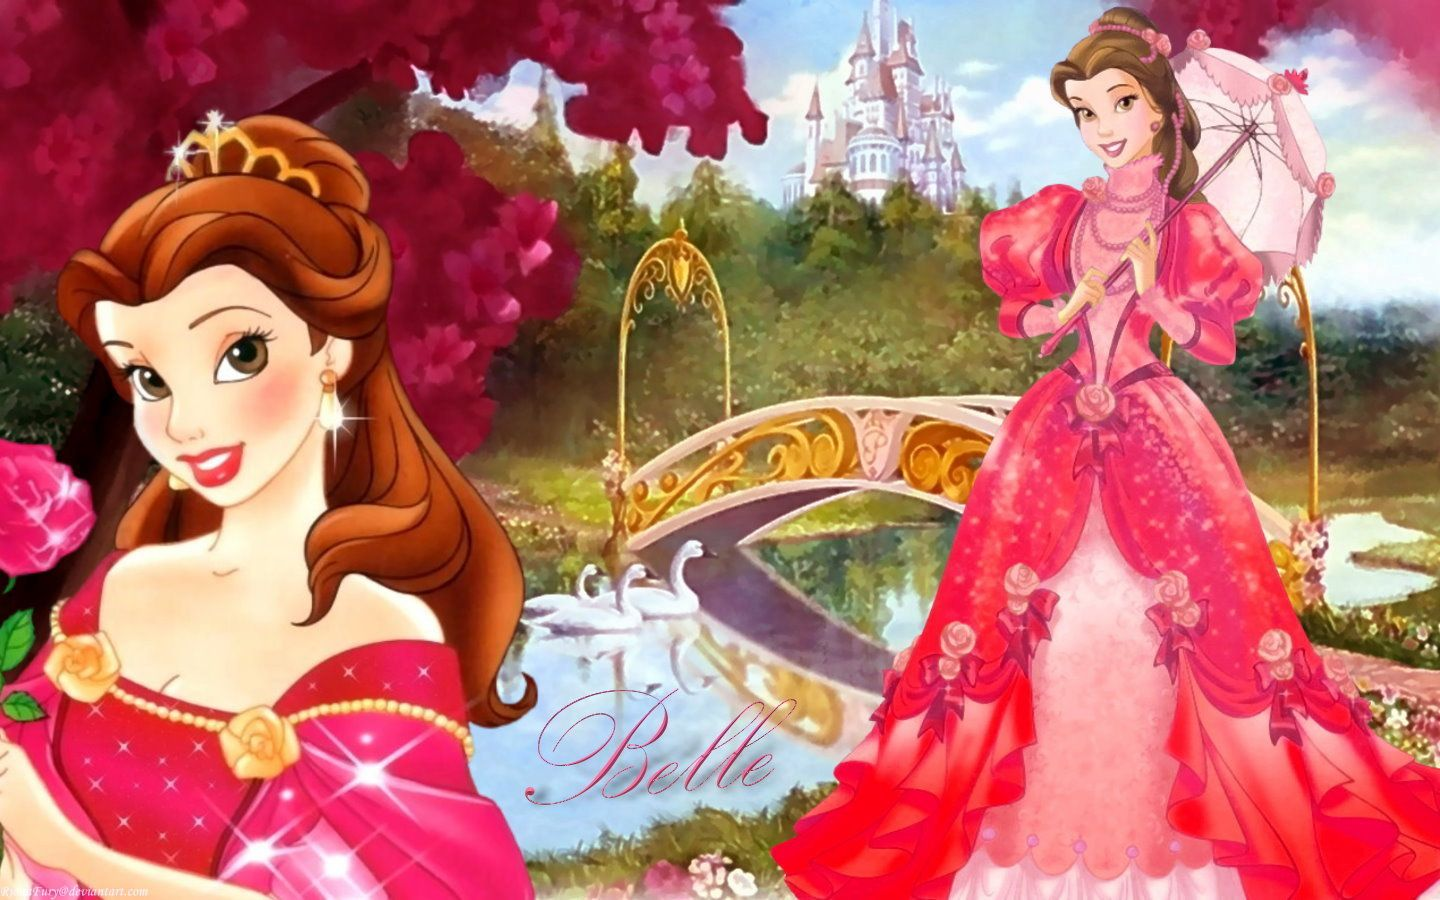 Hair color not hair style poll results disney princess fanpop - Feed Pictures Princess Belle Disney Fanpop Wallpaper With Resolution